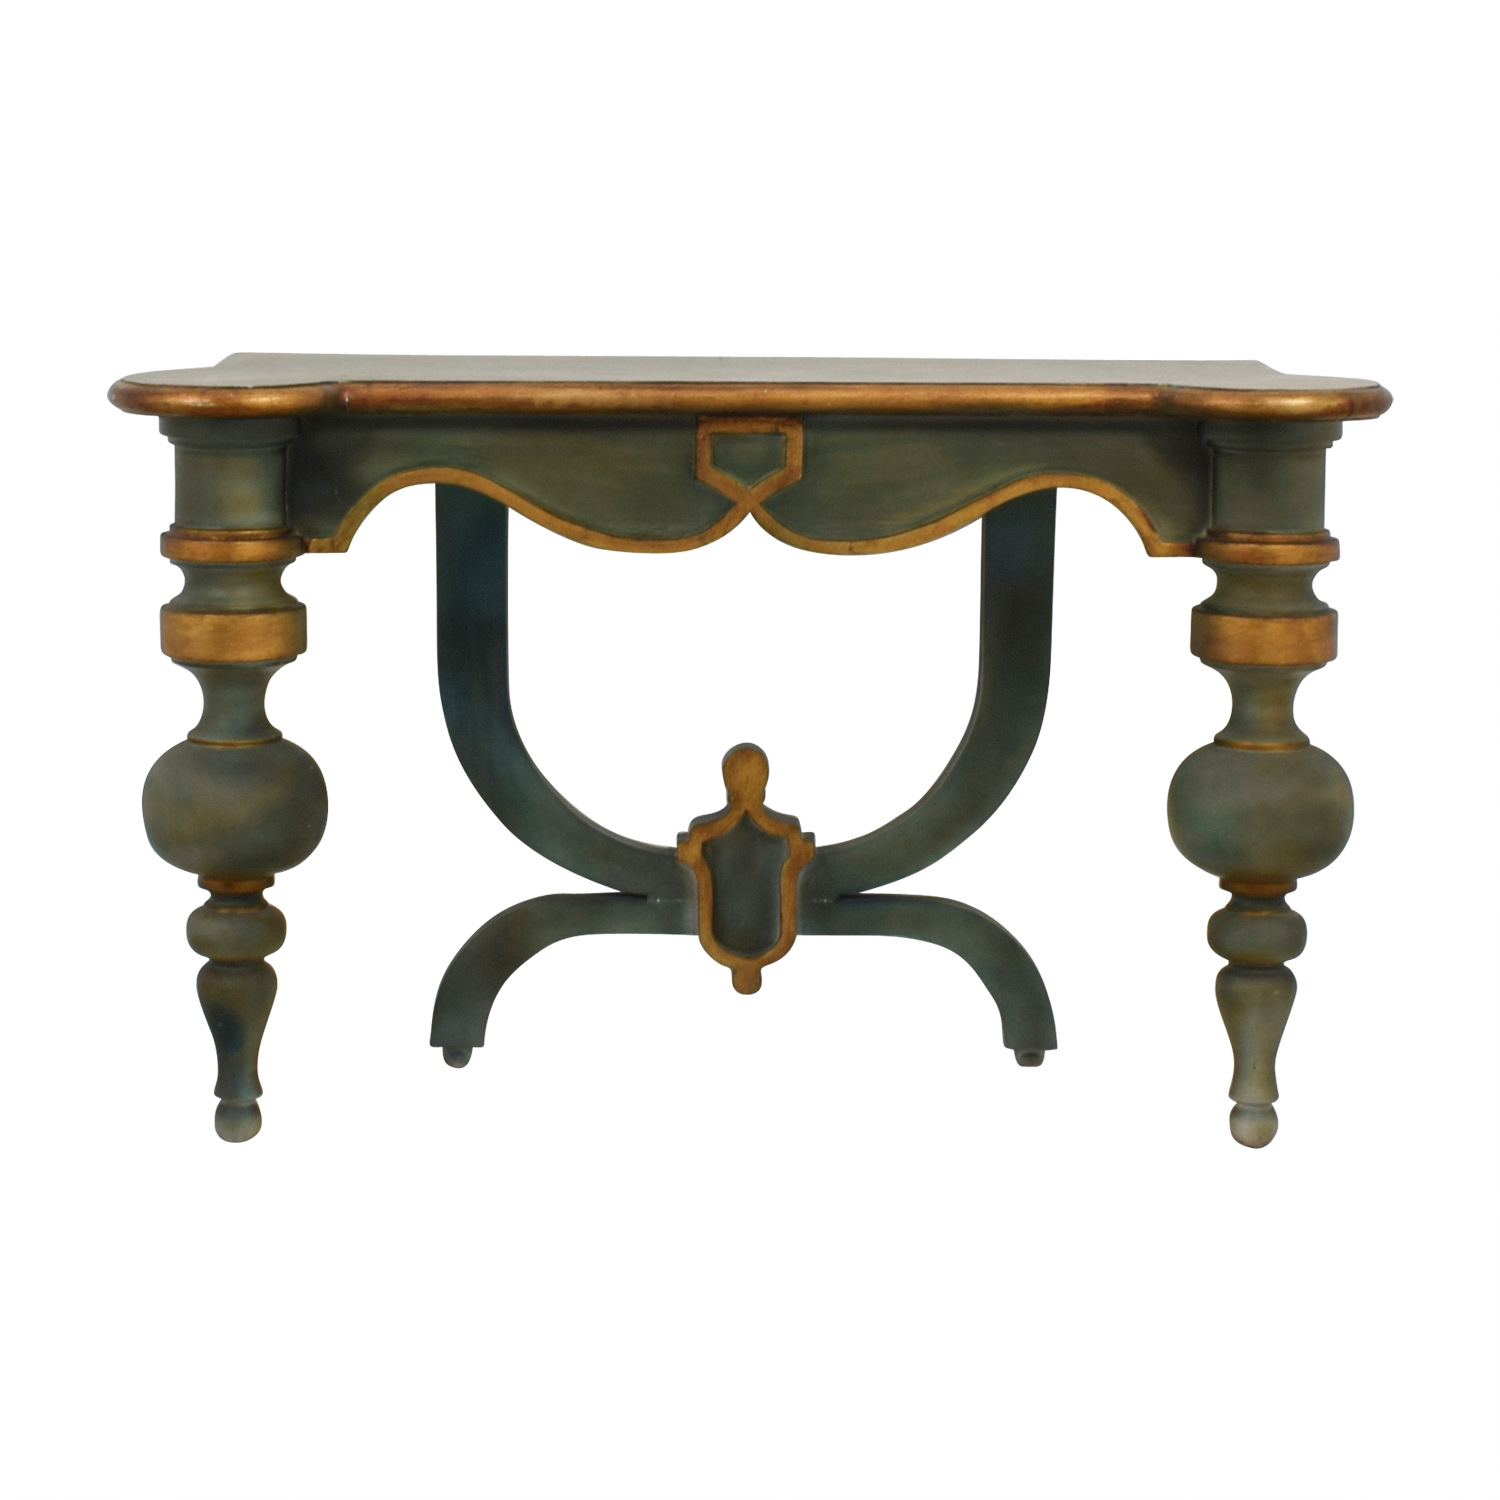 off antique green carved wood foyer entry table console accent tables agate white round mosaic outdoor and chairs nightstand with charging station stacking target skinny turquoise